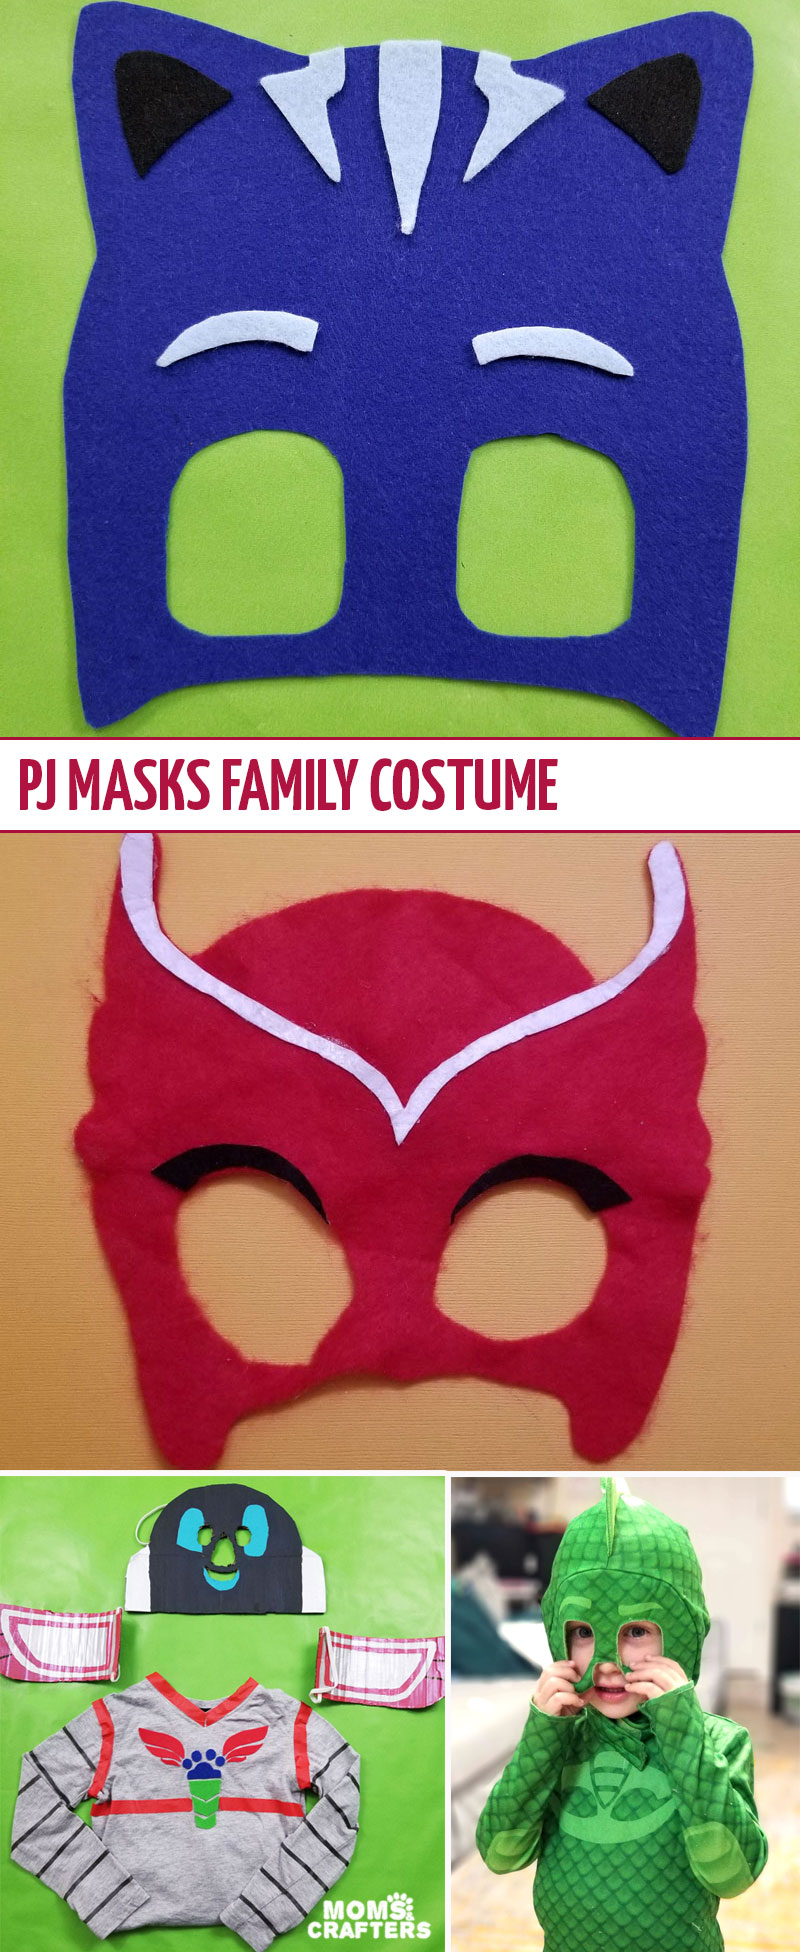 Click for an easy DIY PJ masks family costume idea! This fun costume includes a DIY catboy mask, a DIY owlette mask and matching outfit, and a Gecko costume that was purchased. It also features an adorable DIY PJ robot idea!